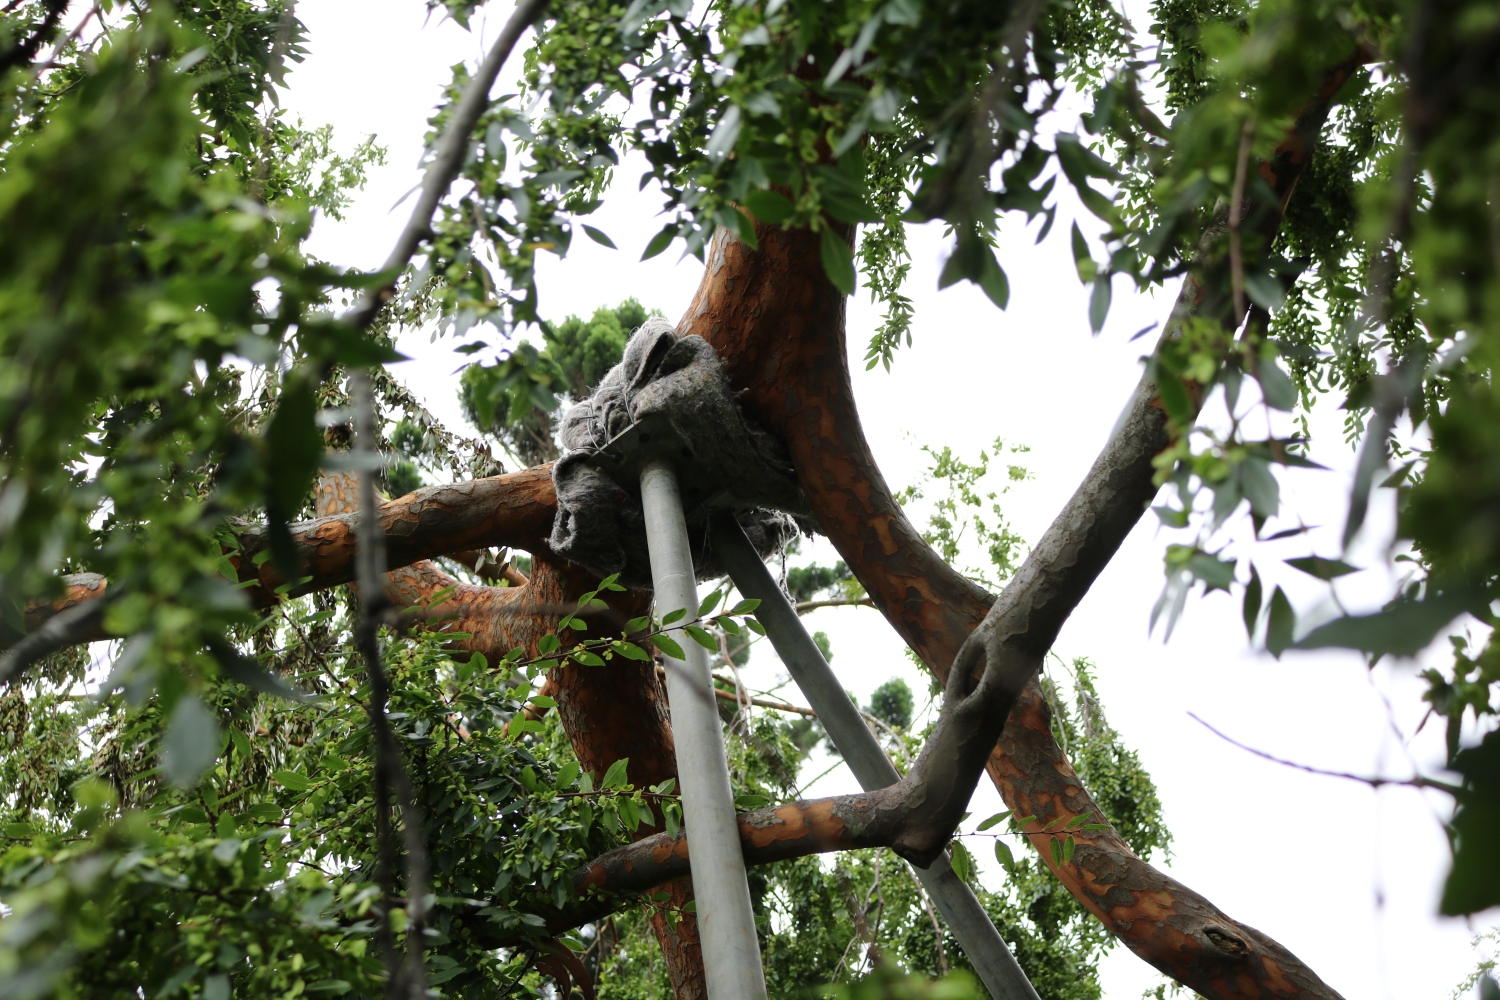 Steel props supporting the damaged Elm tree limb at Elizabeth Farm